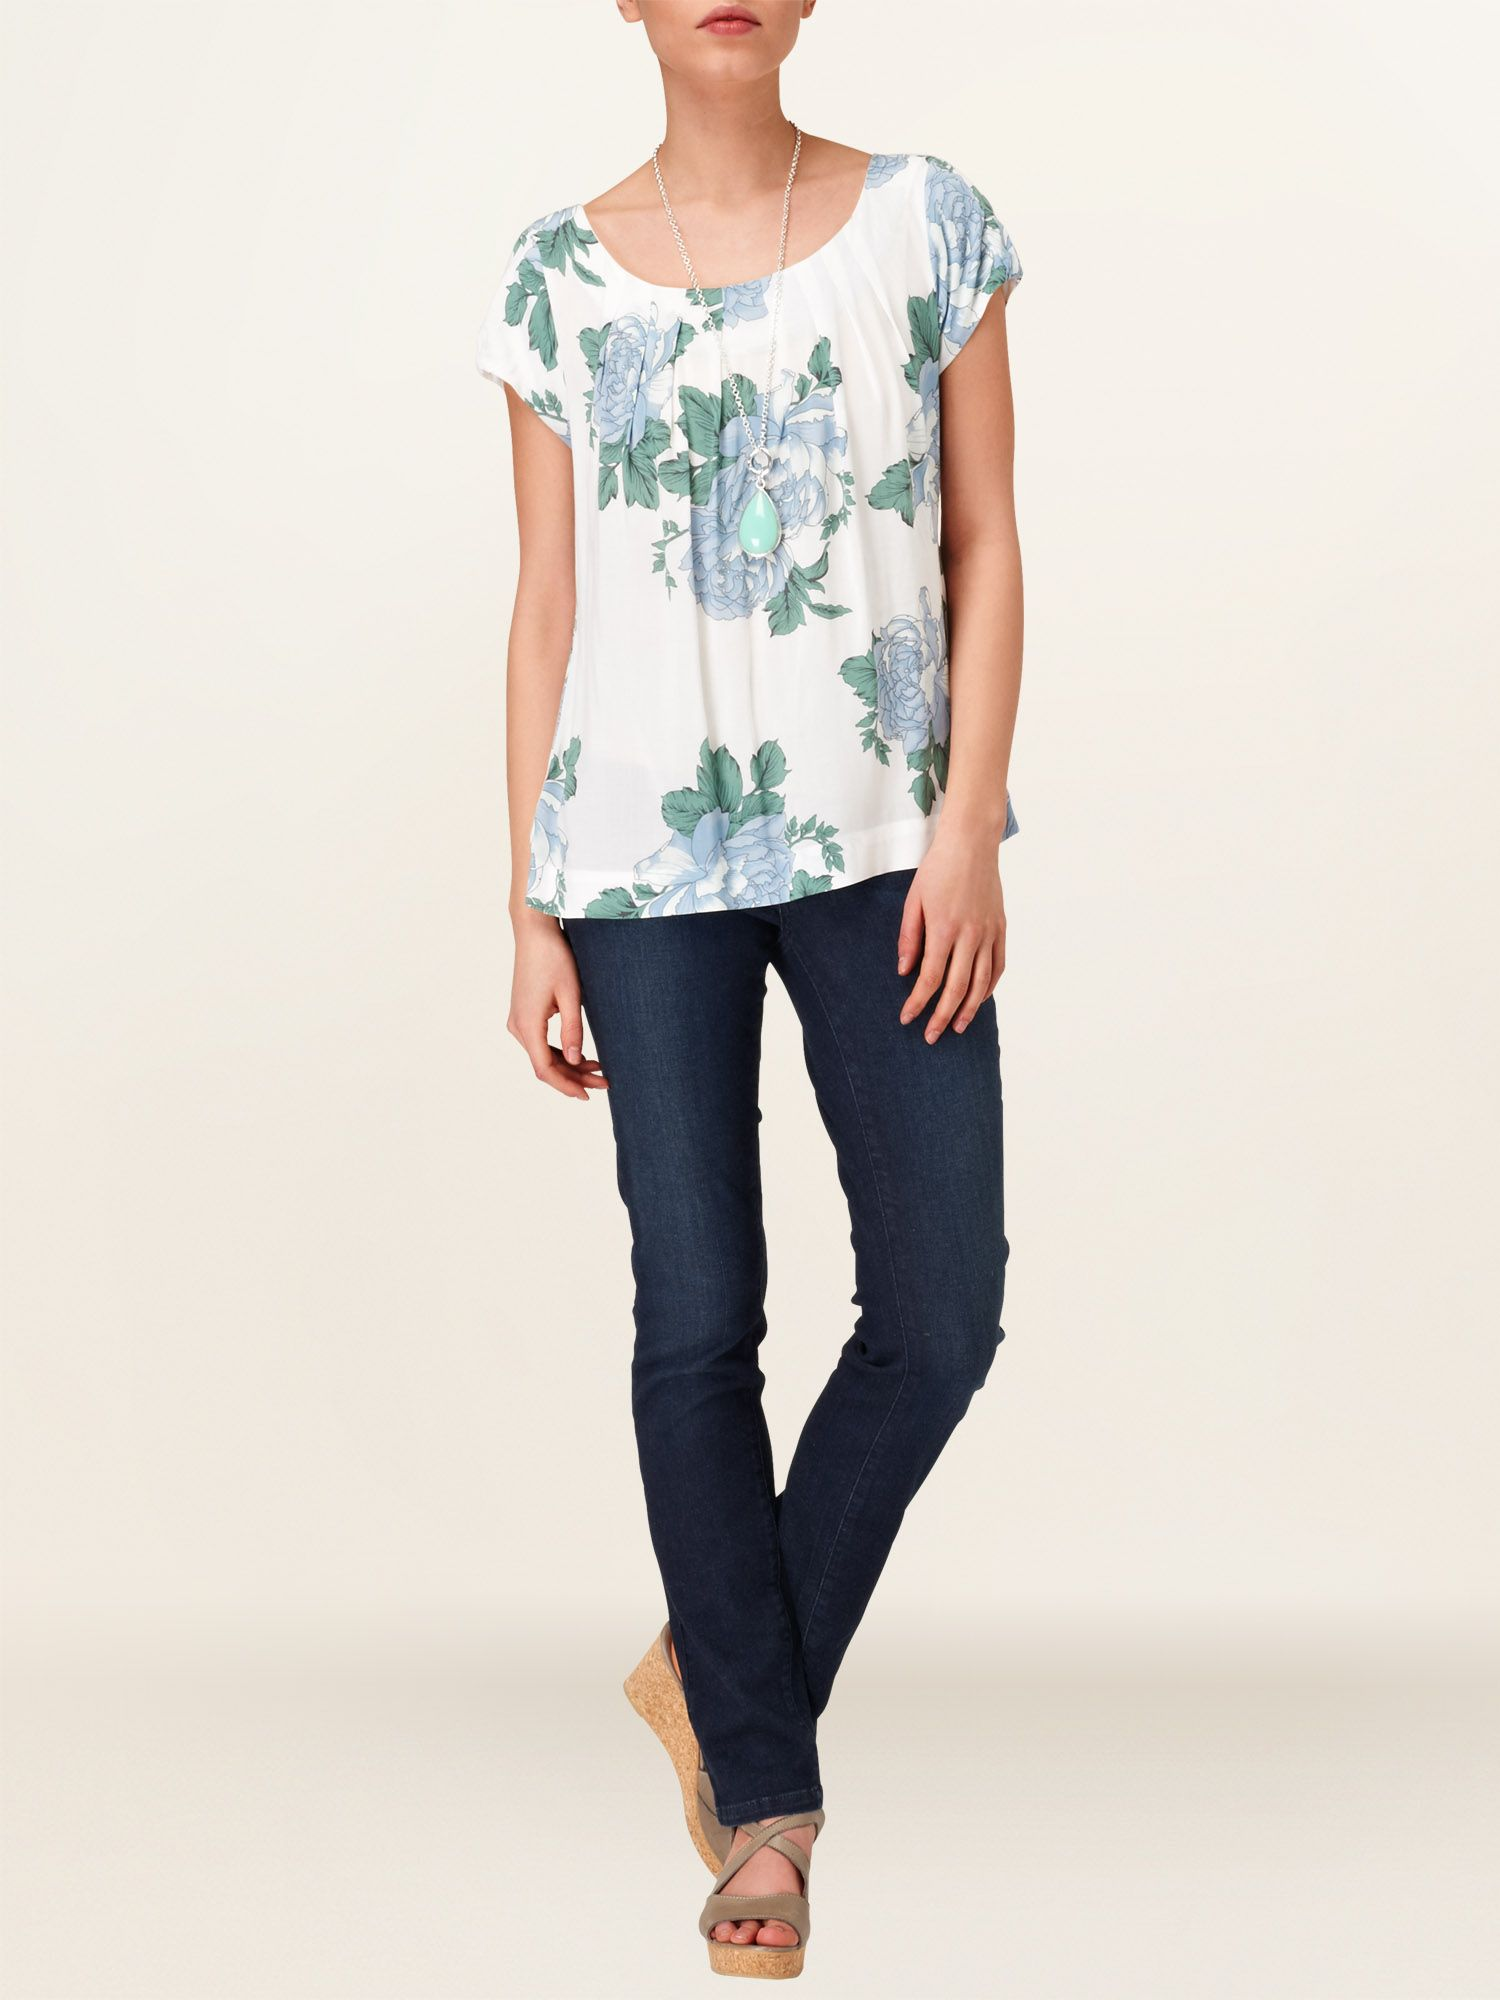 Sandy floral blouse